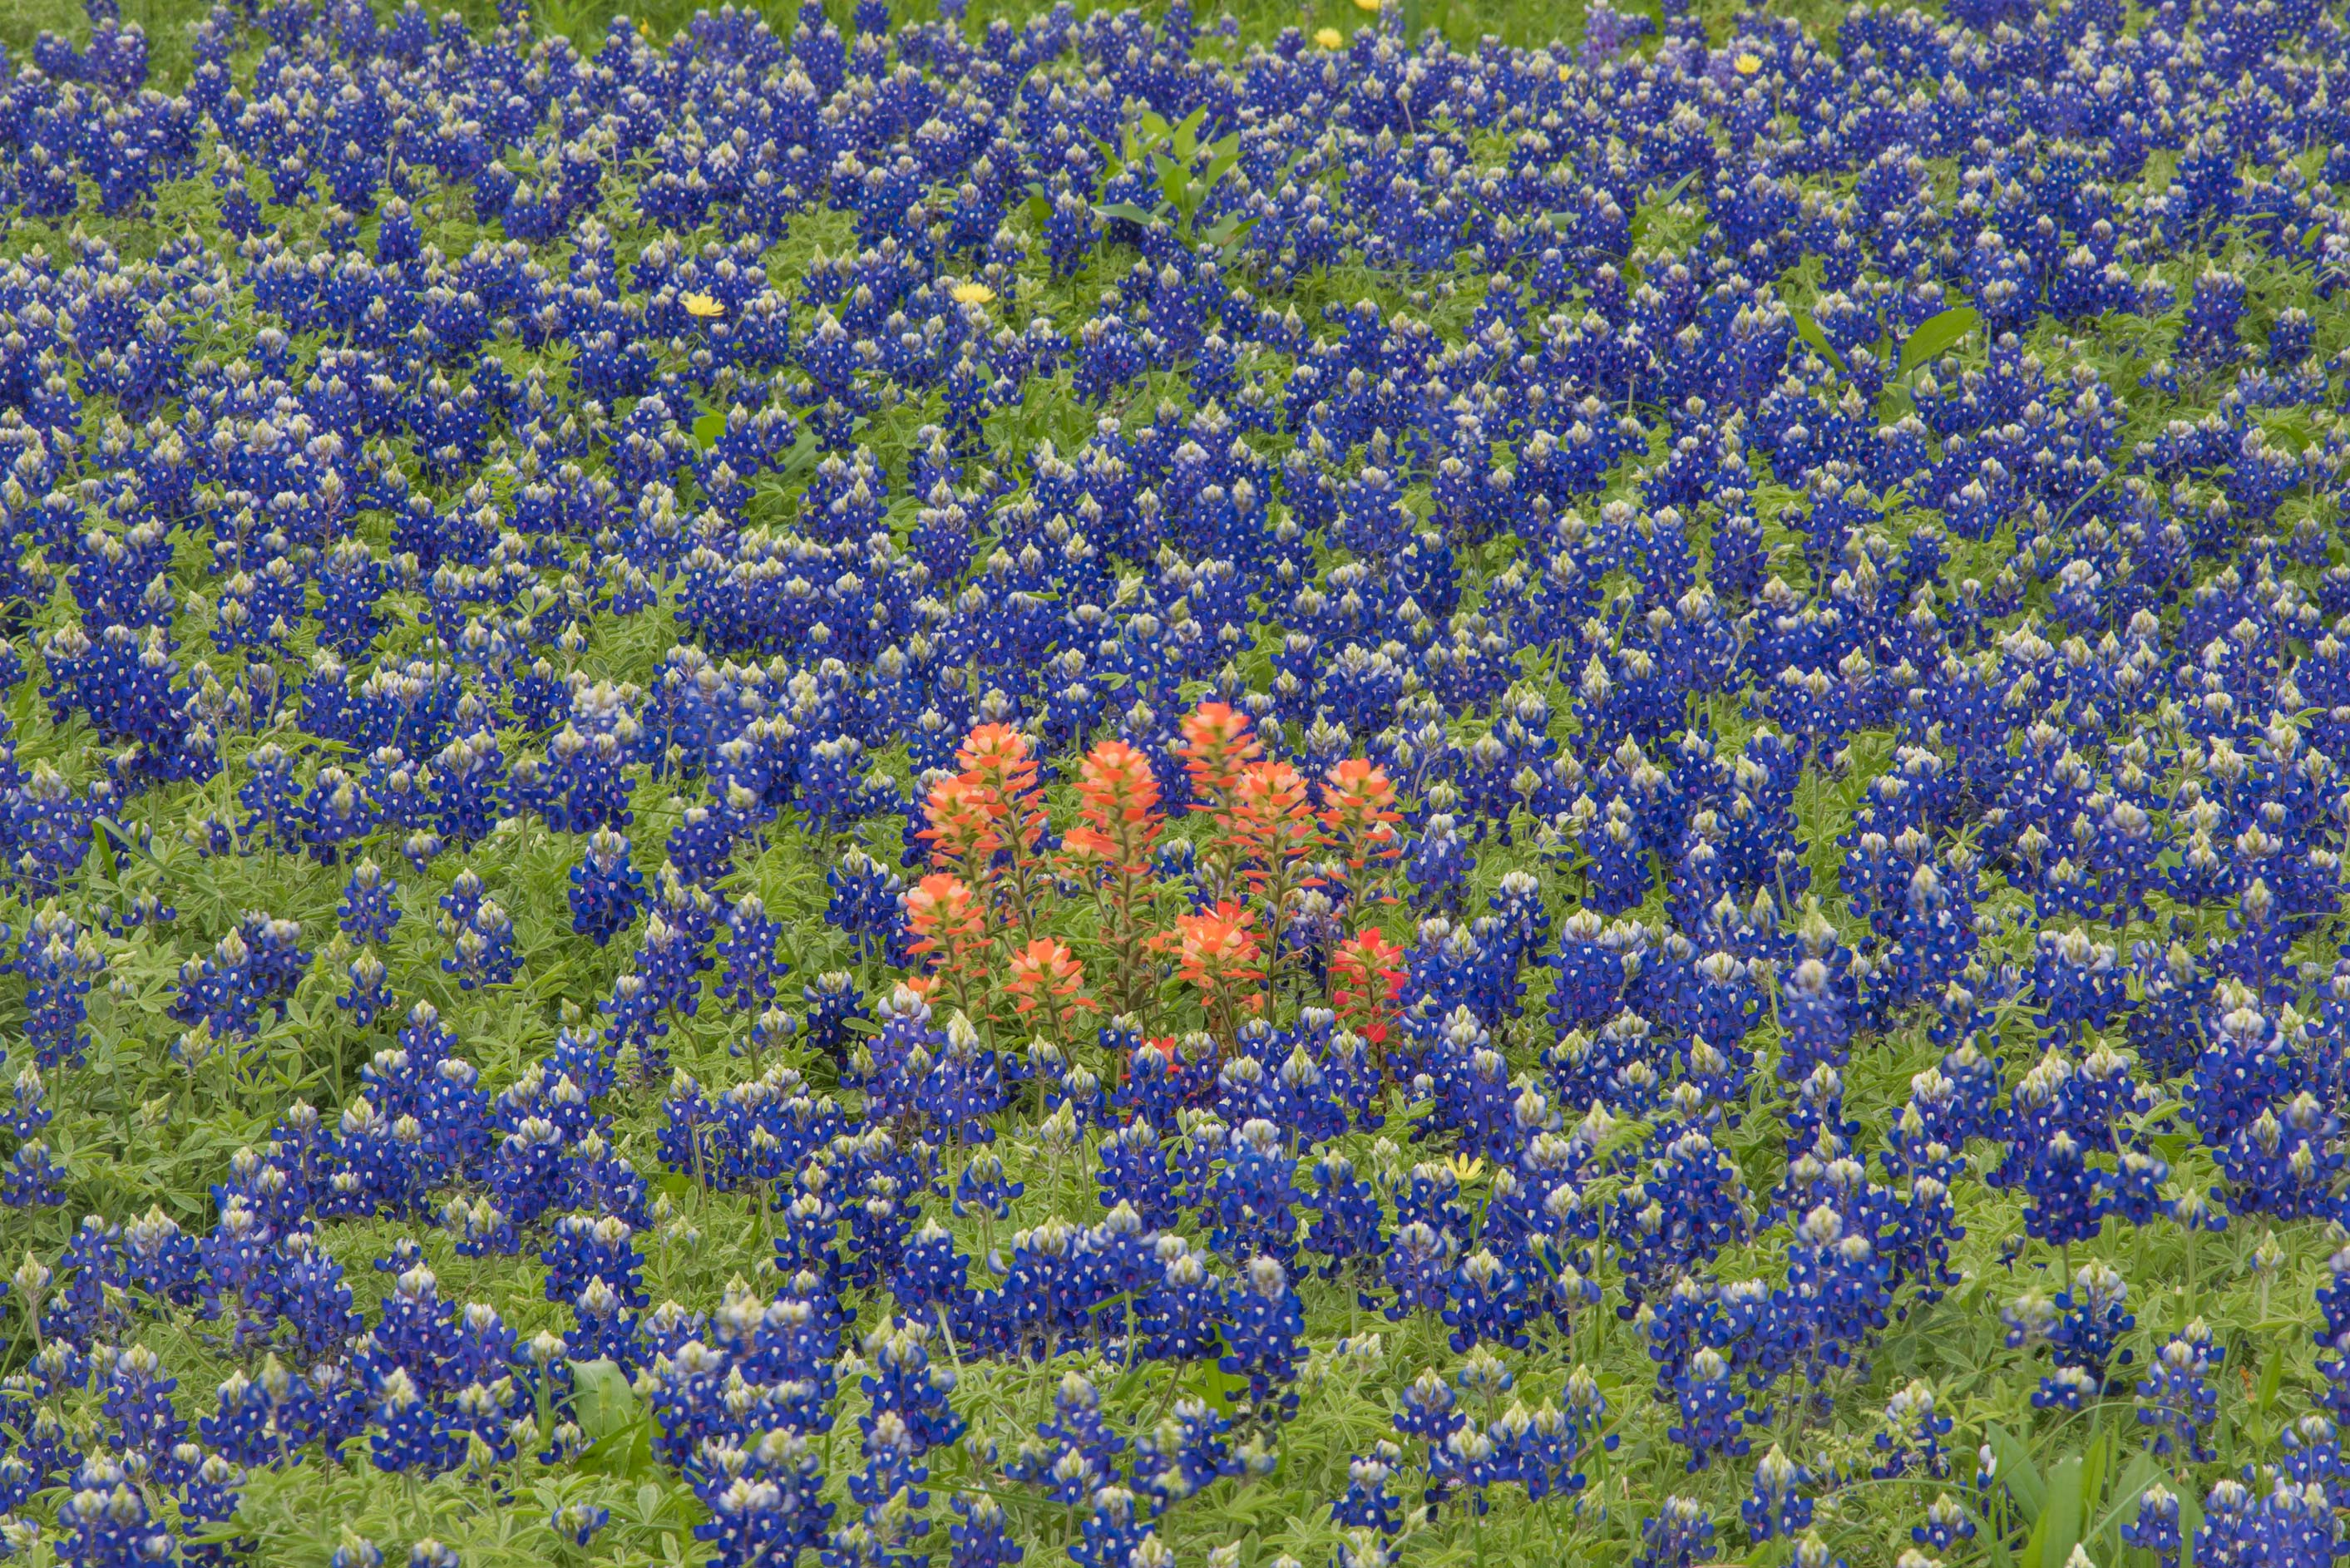 Bluebonnets and paintbrush north from Chappell Hill. Texas